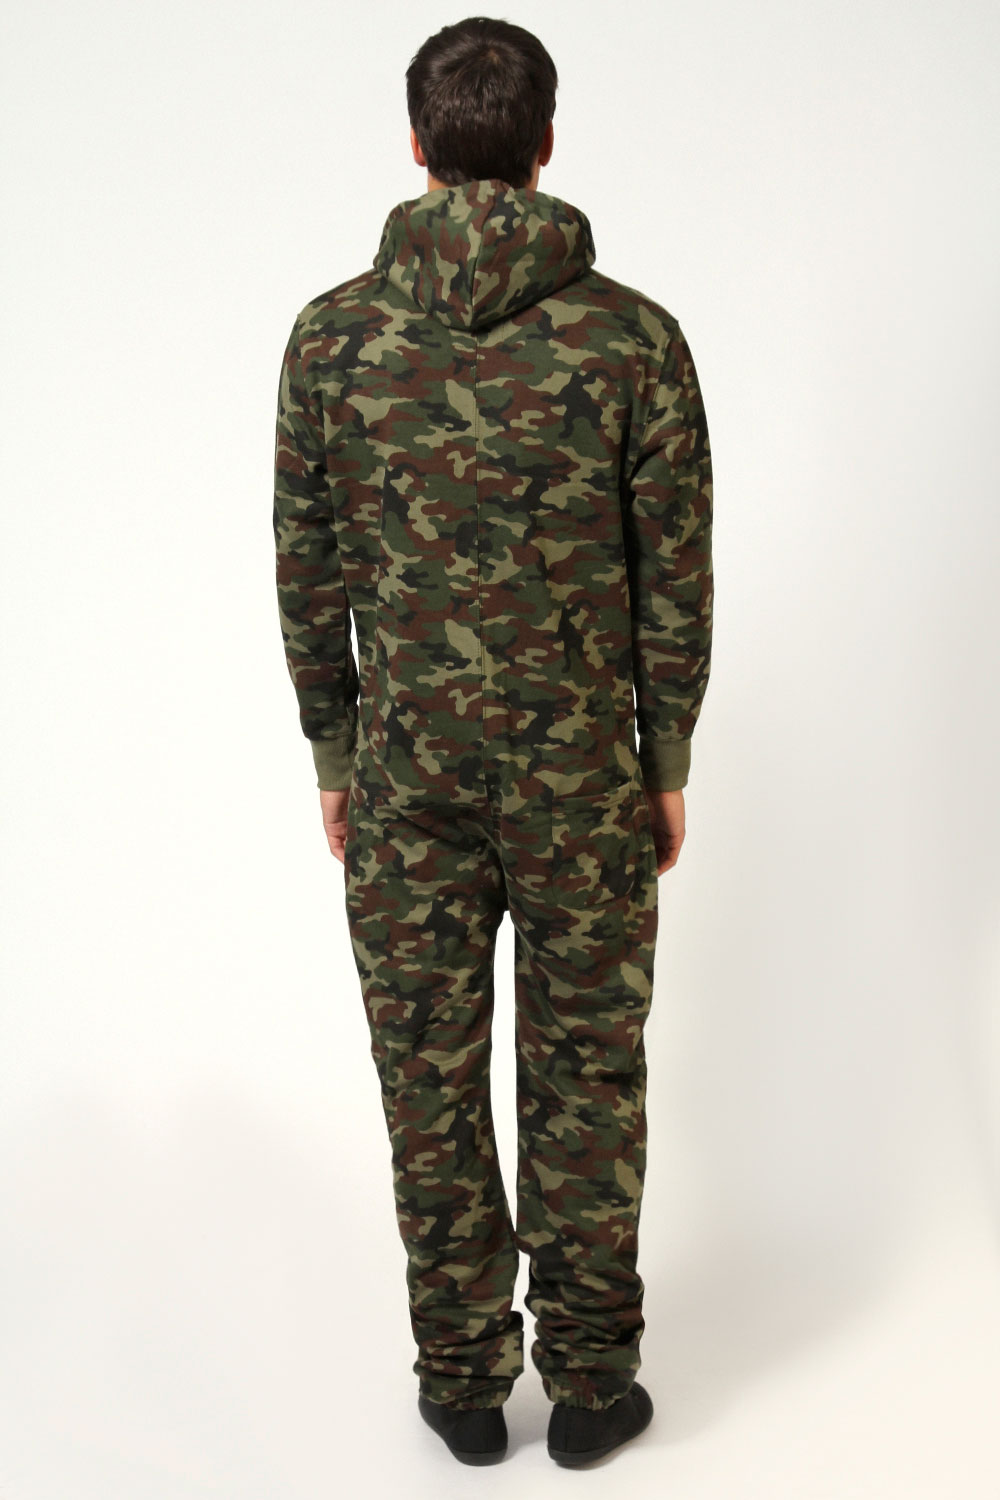 Men's Onesie Pajamas Camouflage $ 16 87 Prime. out of 5 stars 2. Funny Girl Designs. Personalized Embroidered Army Camouflage Onesie Bodysuit For Baby - Your Custom Name! $ 22 5 out of 5 stars 1. Carhartt. Baby Boys' Short Sleeve Bodyshirt. from .